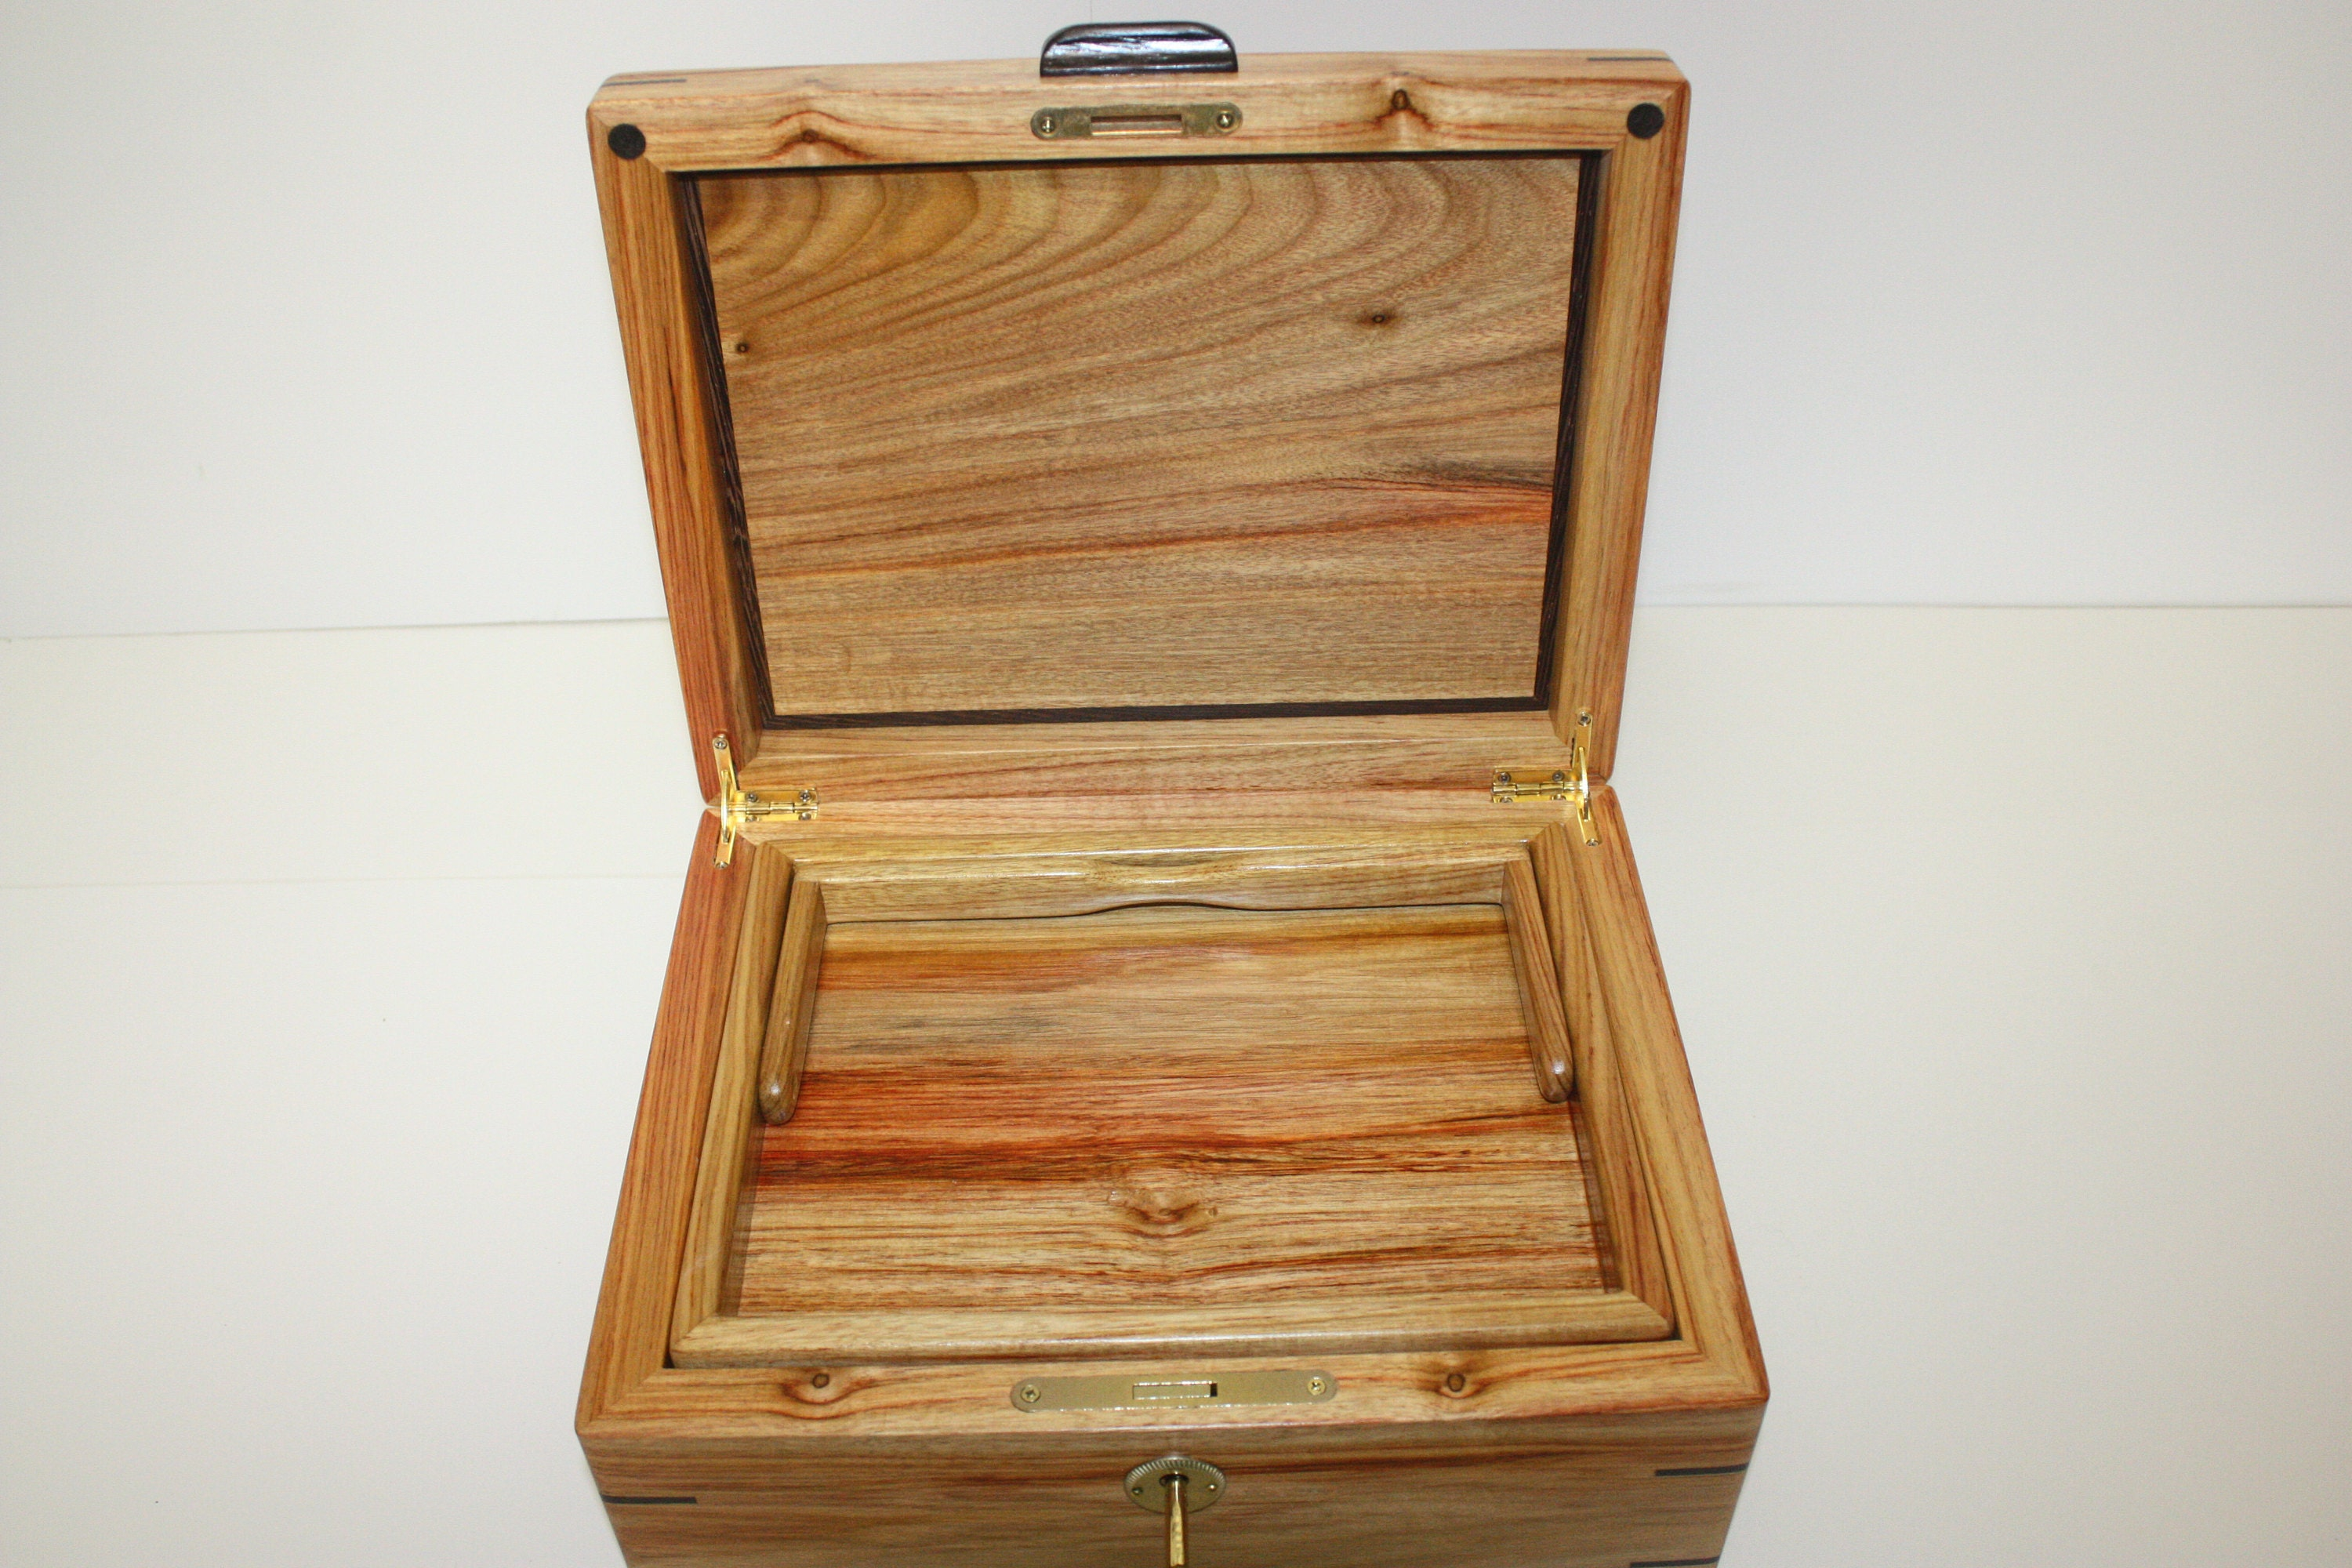 Canarywood Box with Lid, Locking